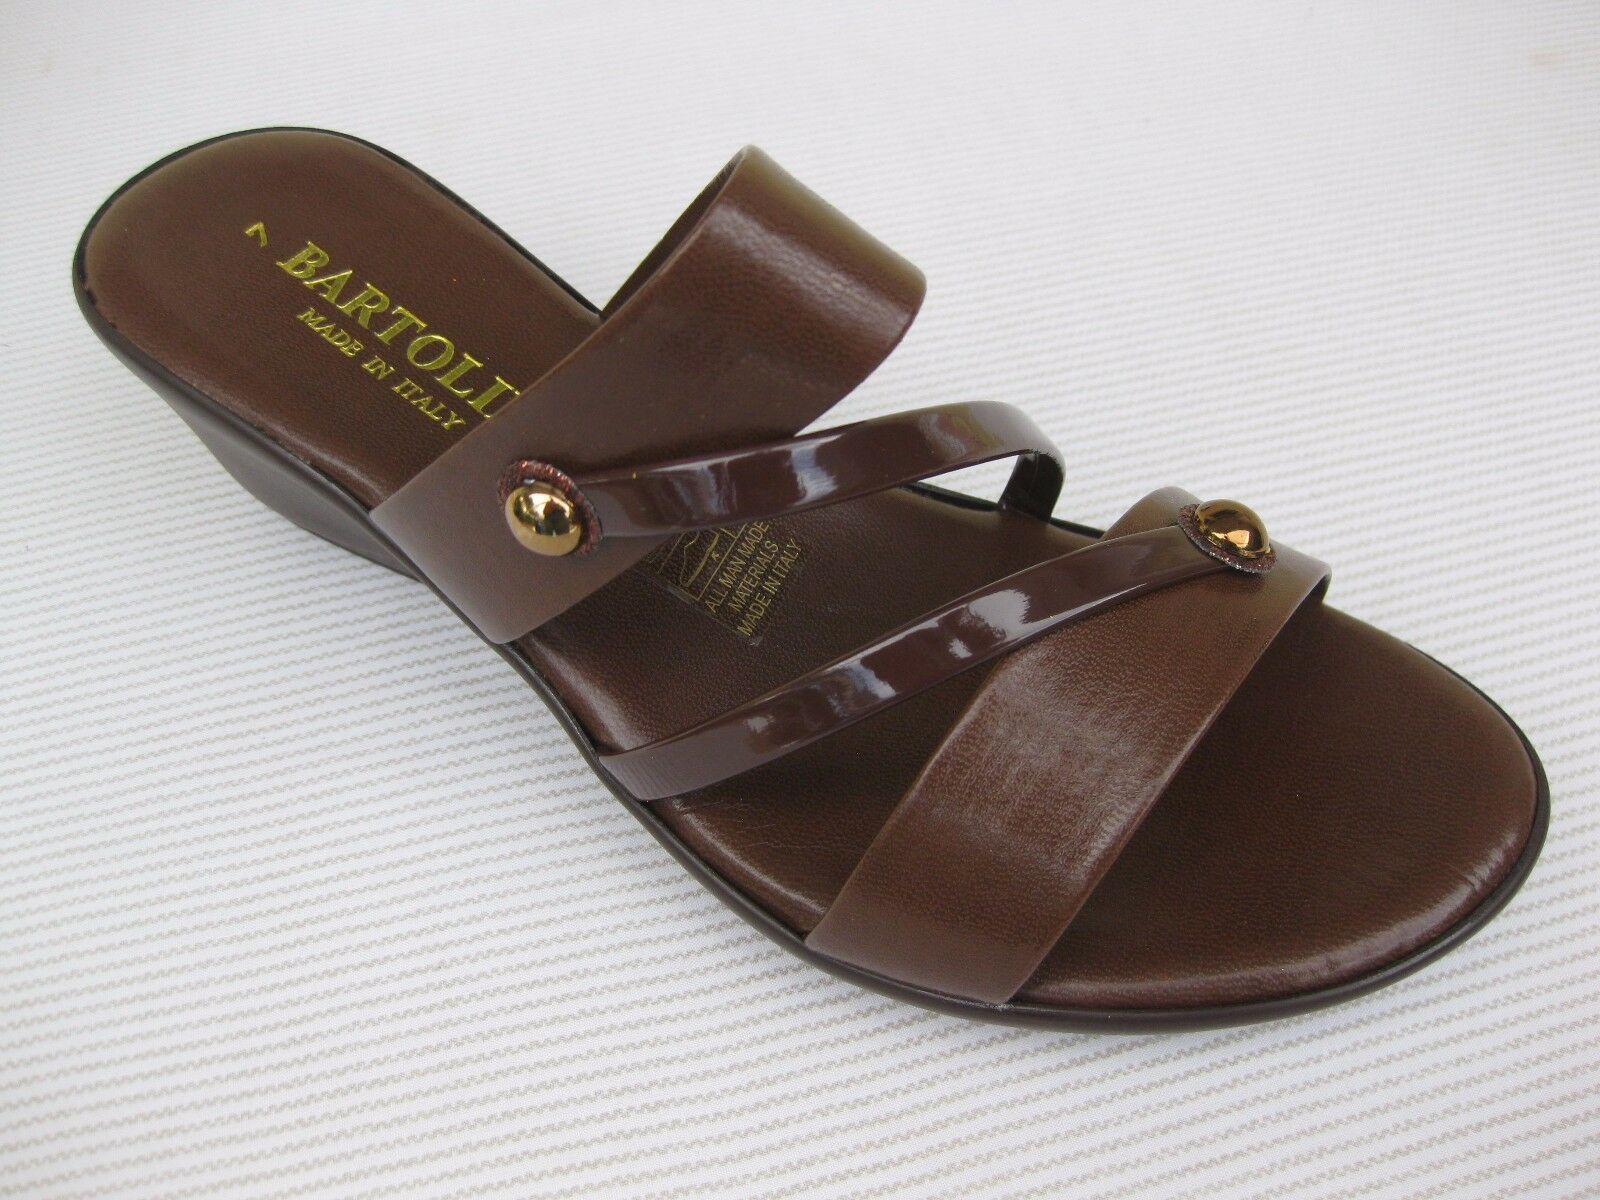 Bartolini Womens Shoes Brown $49 Elba - 1 Brown Shoes Slide Wedge Italy 9 d8d0db